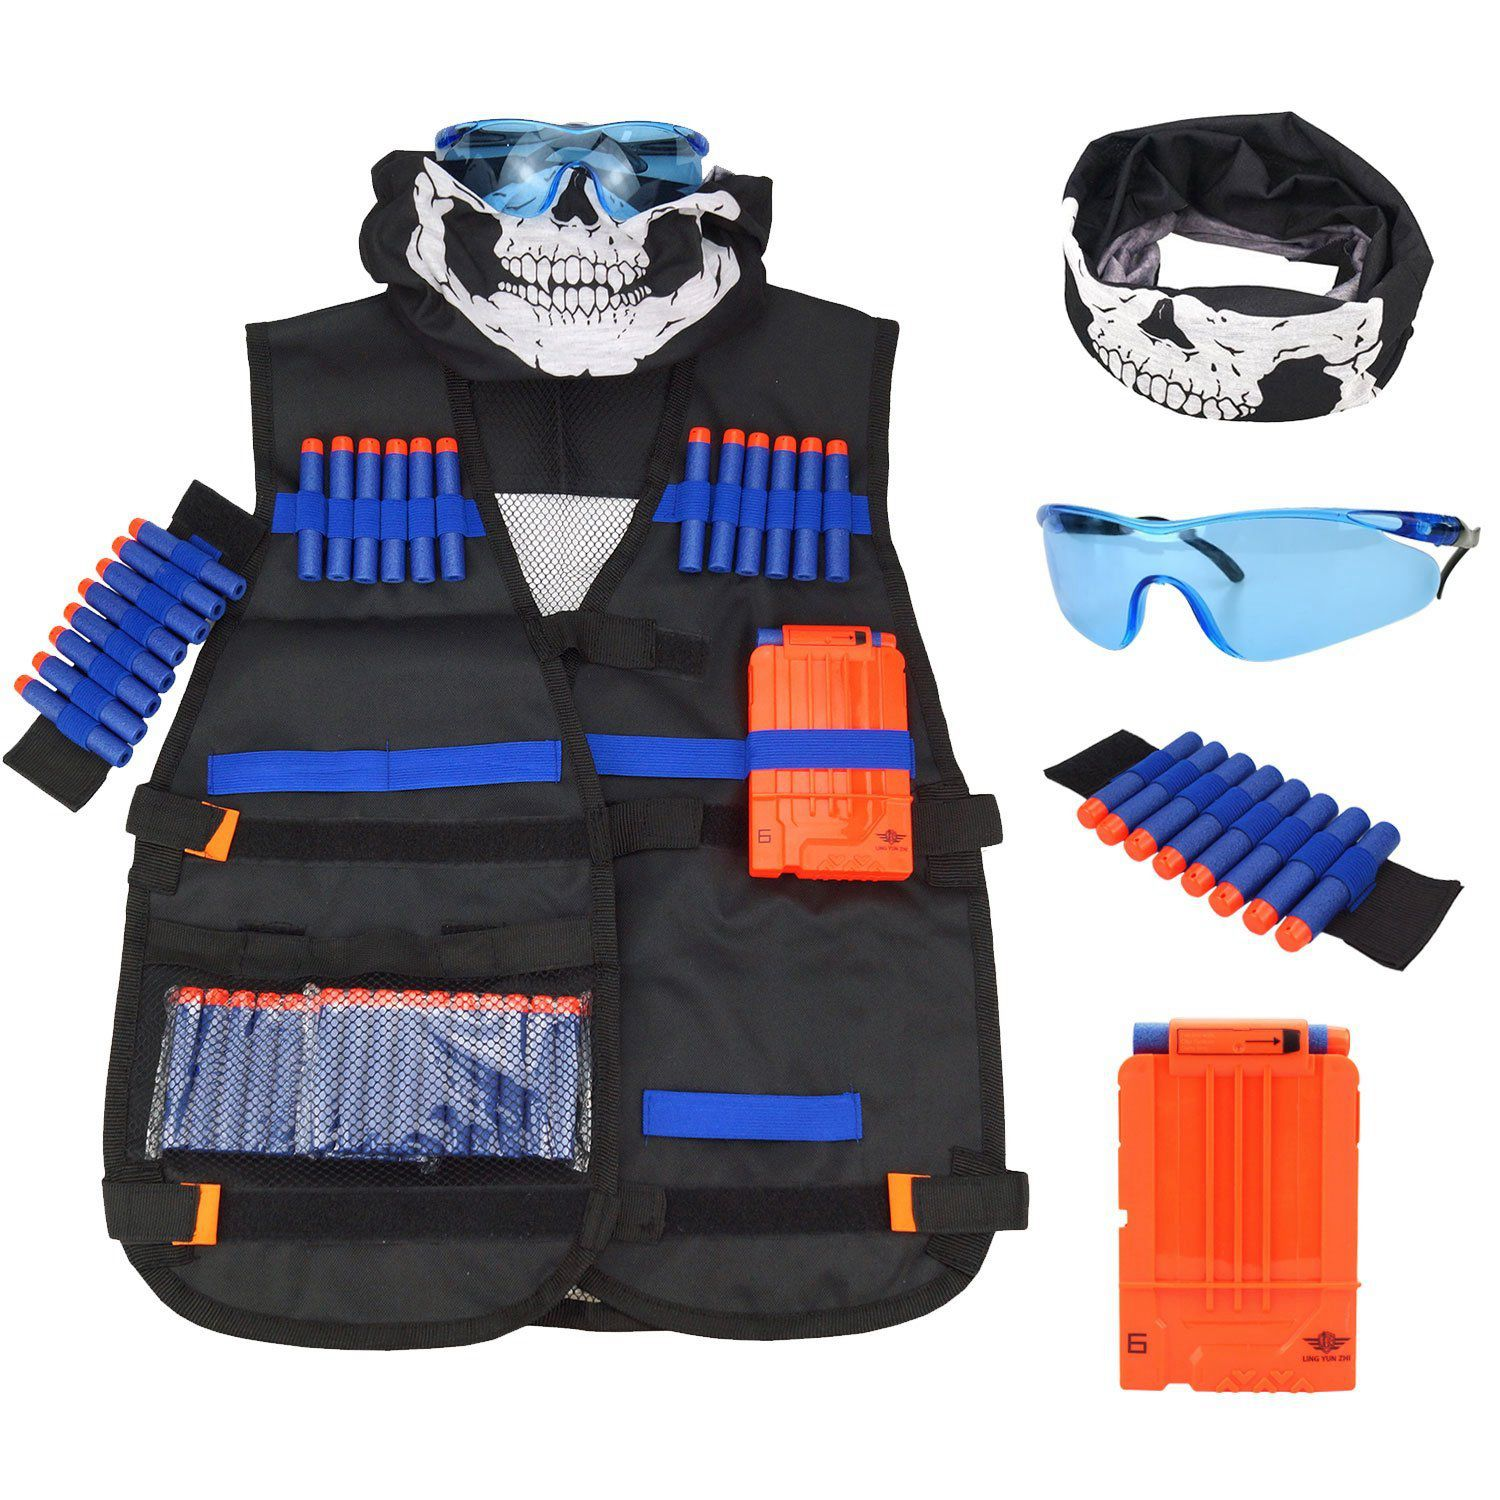 ChildrenBlack Tactical Gun Accessories  Waistcoat Ammo Holder N-Strike Elite Pistol Bullets Toy Clip Darts For Nerf